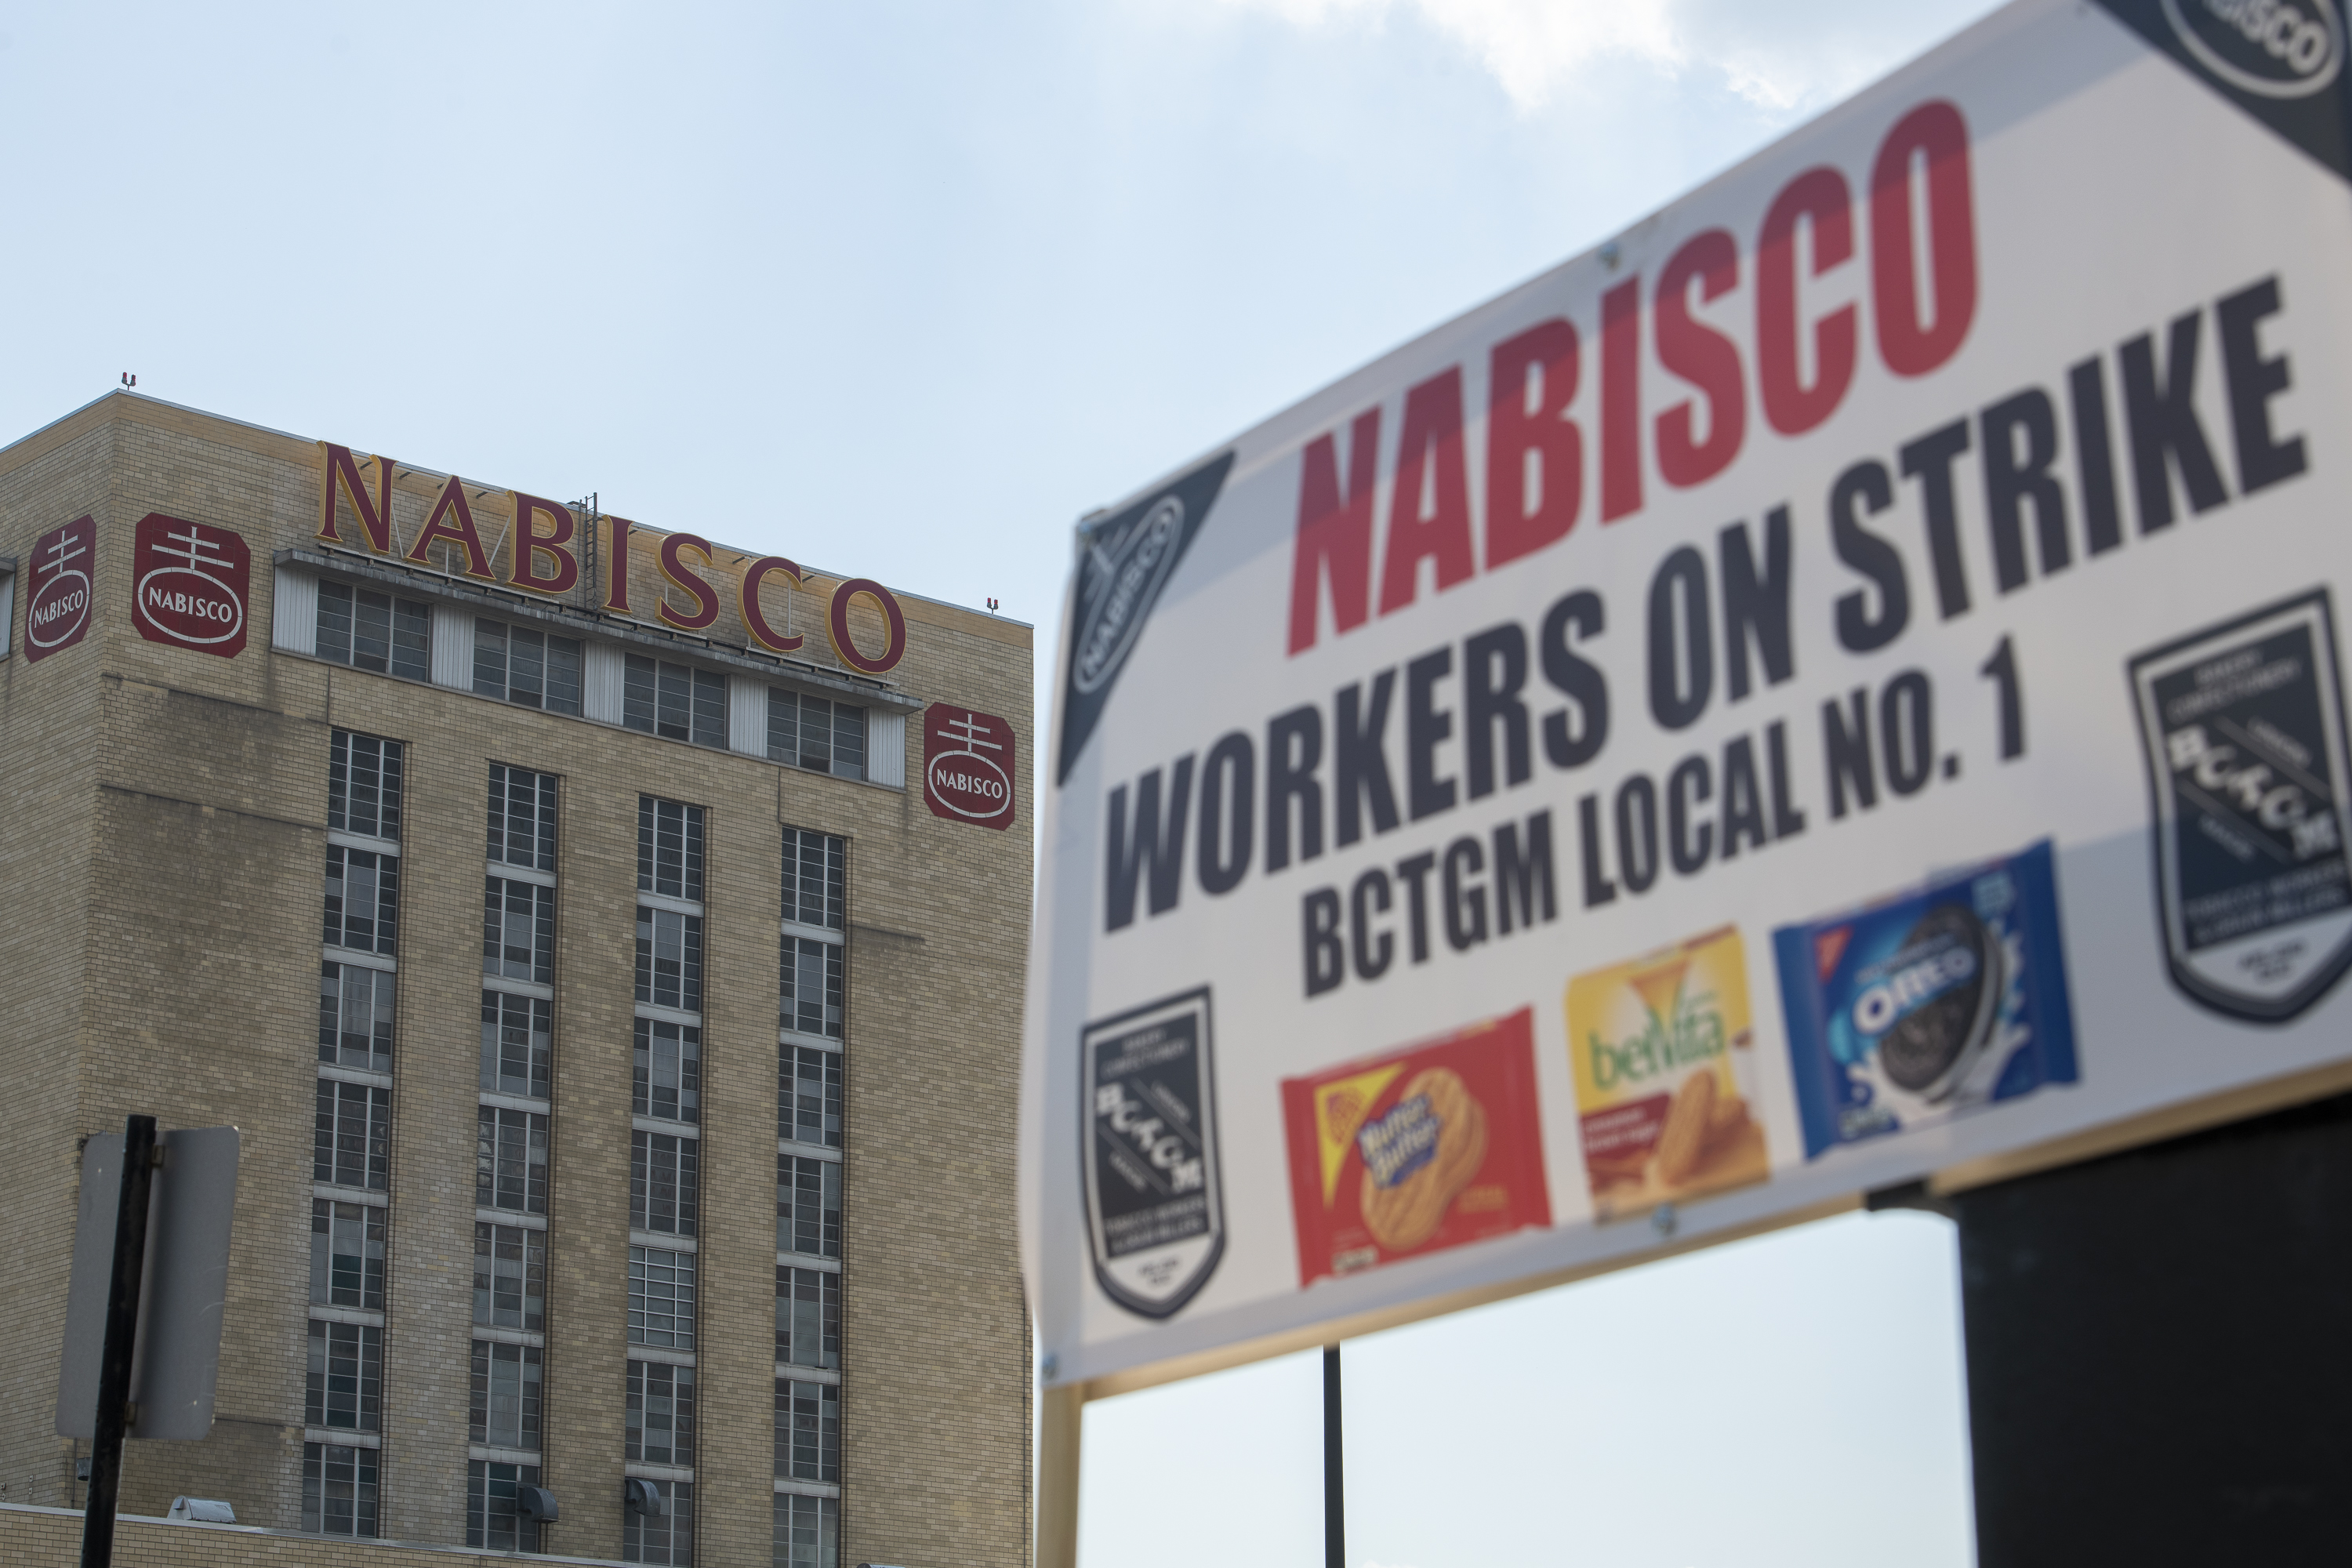 Workers on strike at the Nabisco plant, 7300 S. Kedzie Ave., have cited bargaining issues that include health coverage and work schedules.